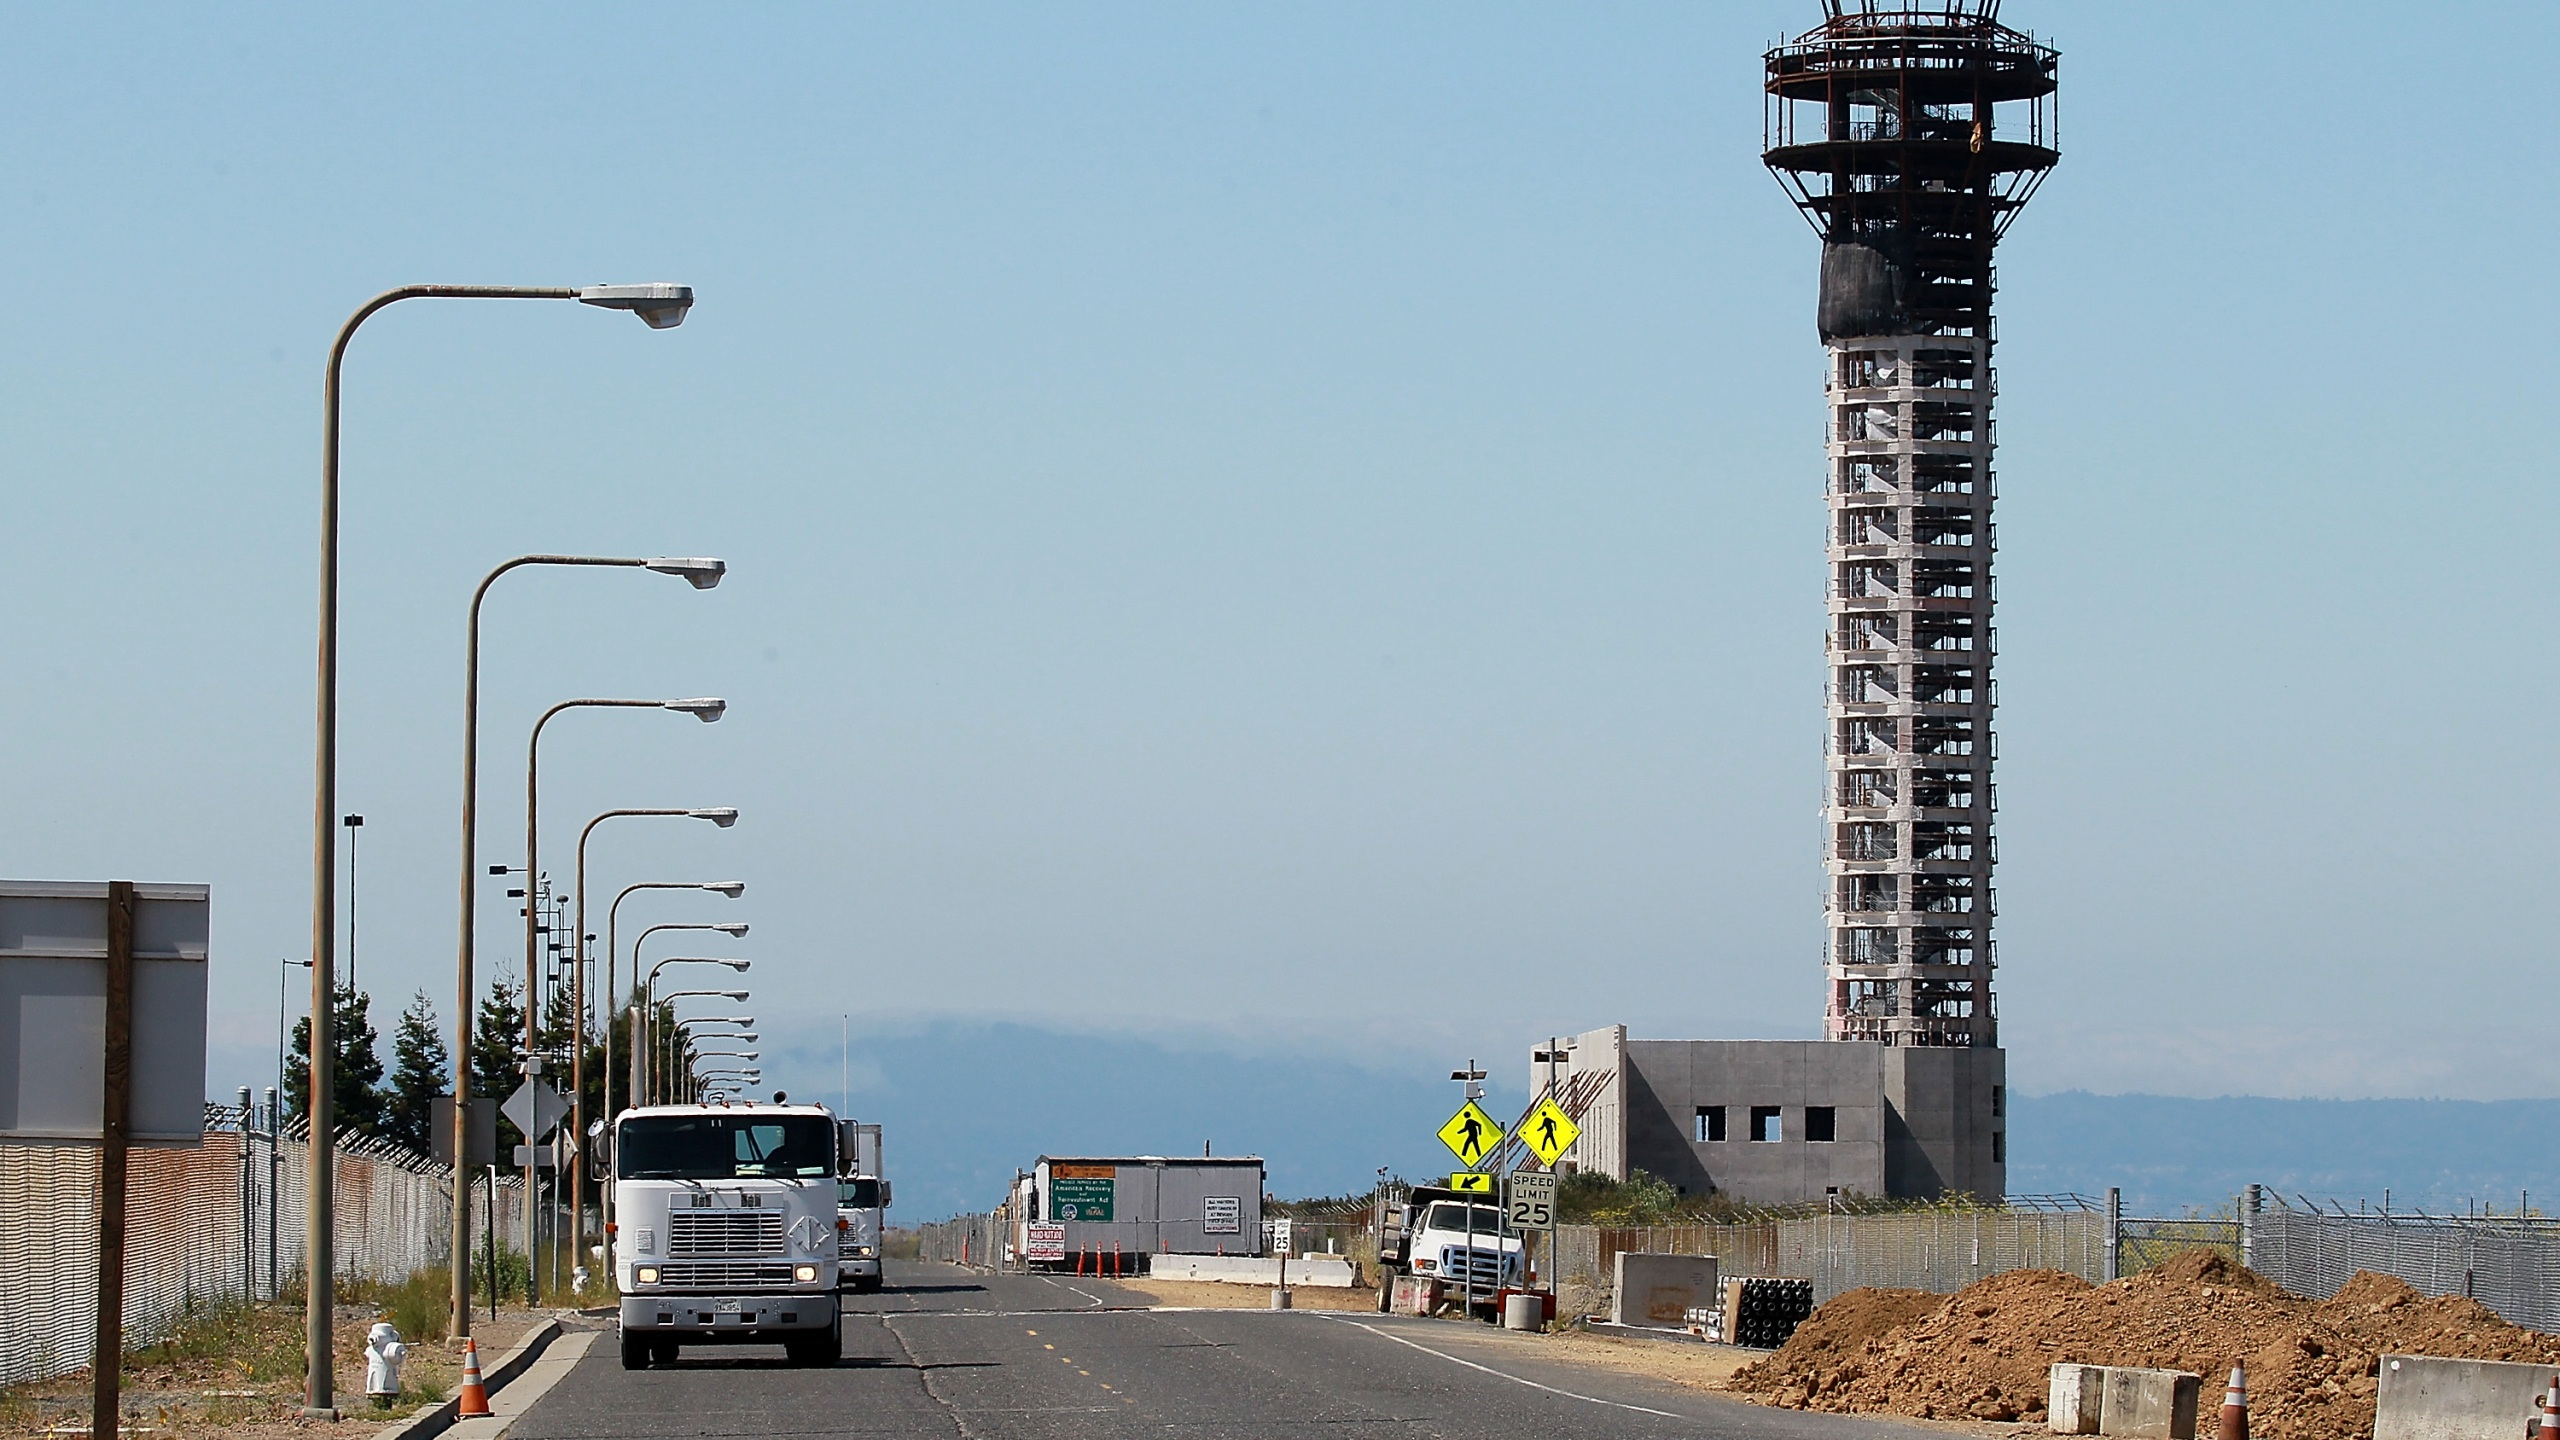 Trucks drive down a road near a half-completed 236-foot FAA control tower at Oakland International Airport on August 3, 2011 in Oakland. (Justin Sullivan/Getty Images)